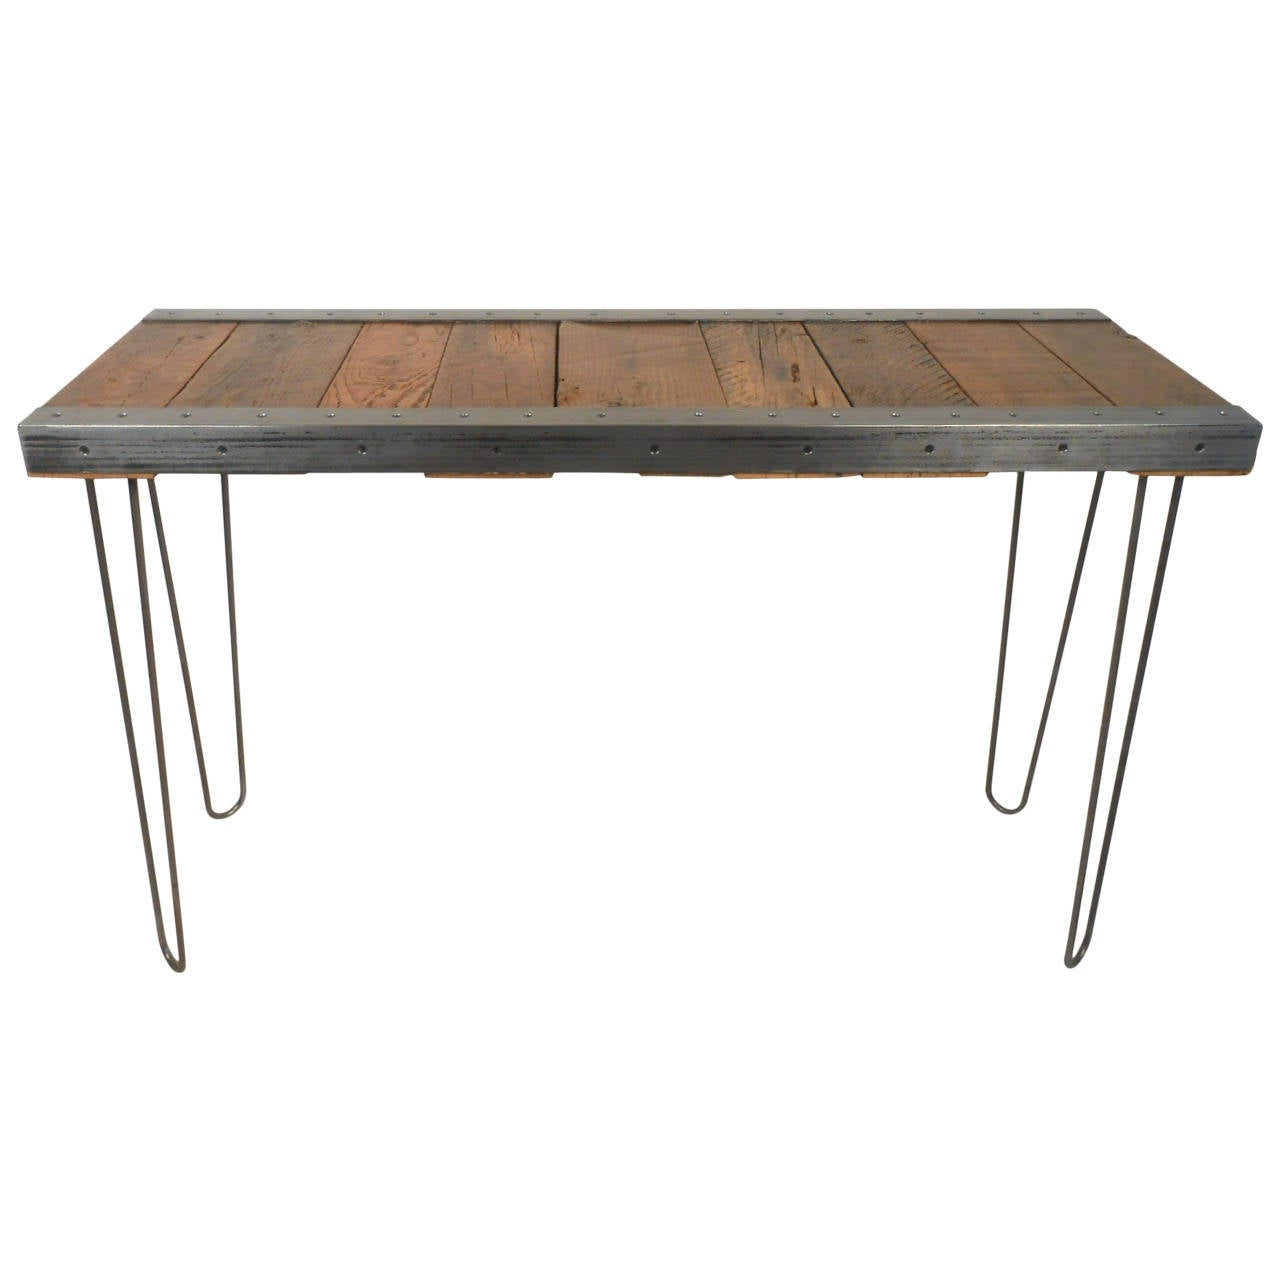 Foyer Table Hairpin Legs : Industrial modern console table with hairpin legs at stdibs